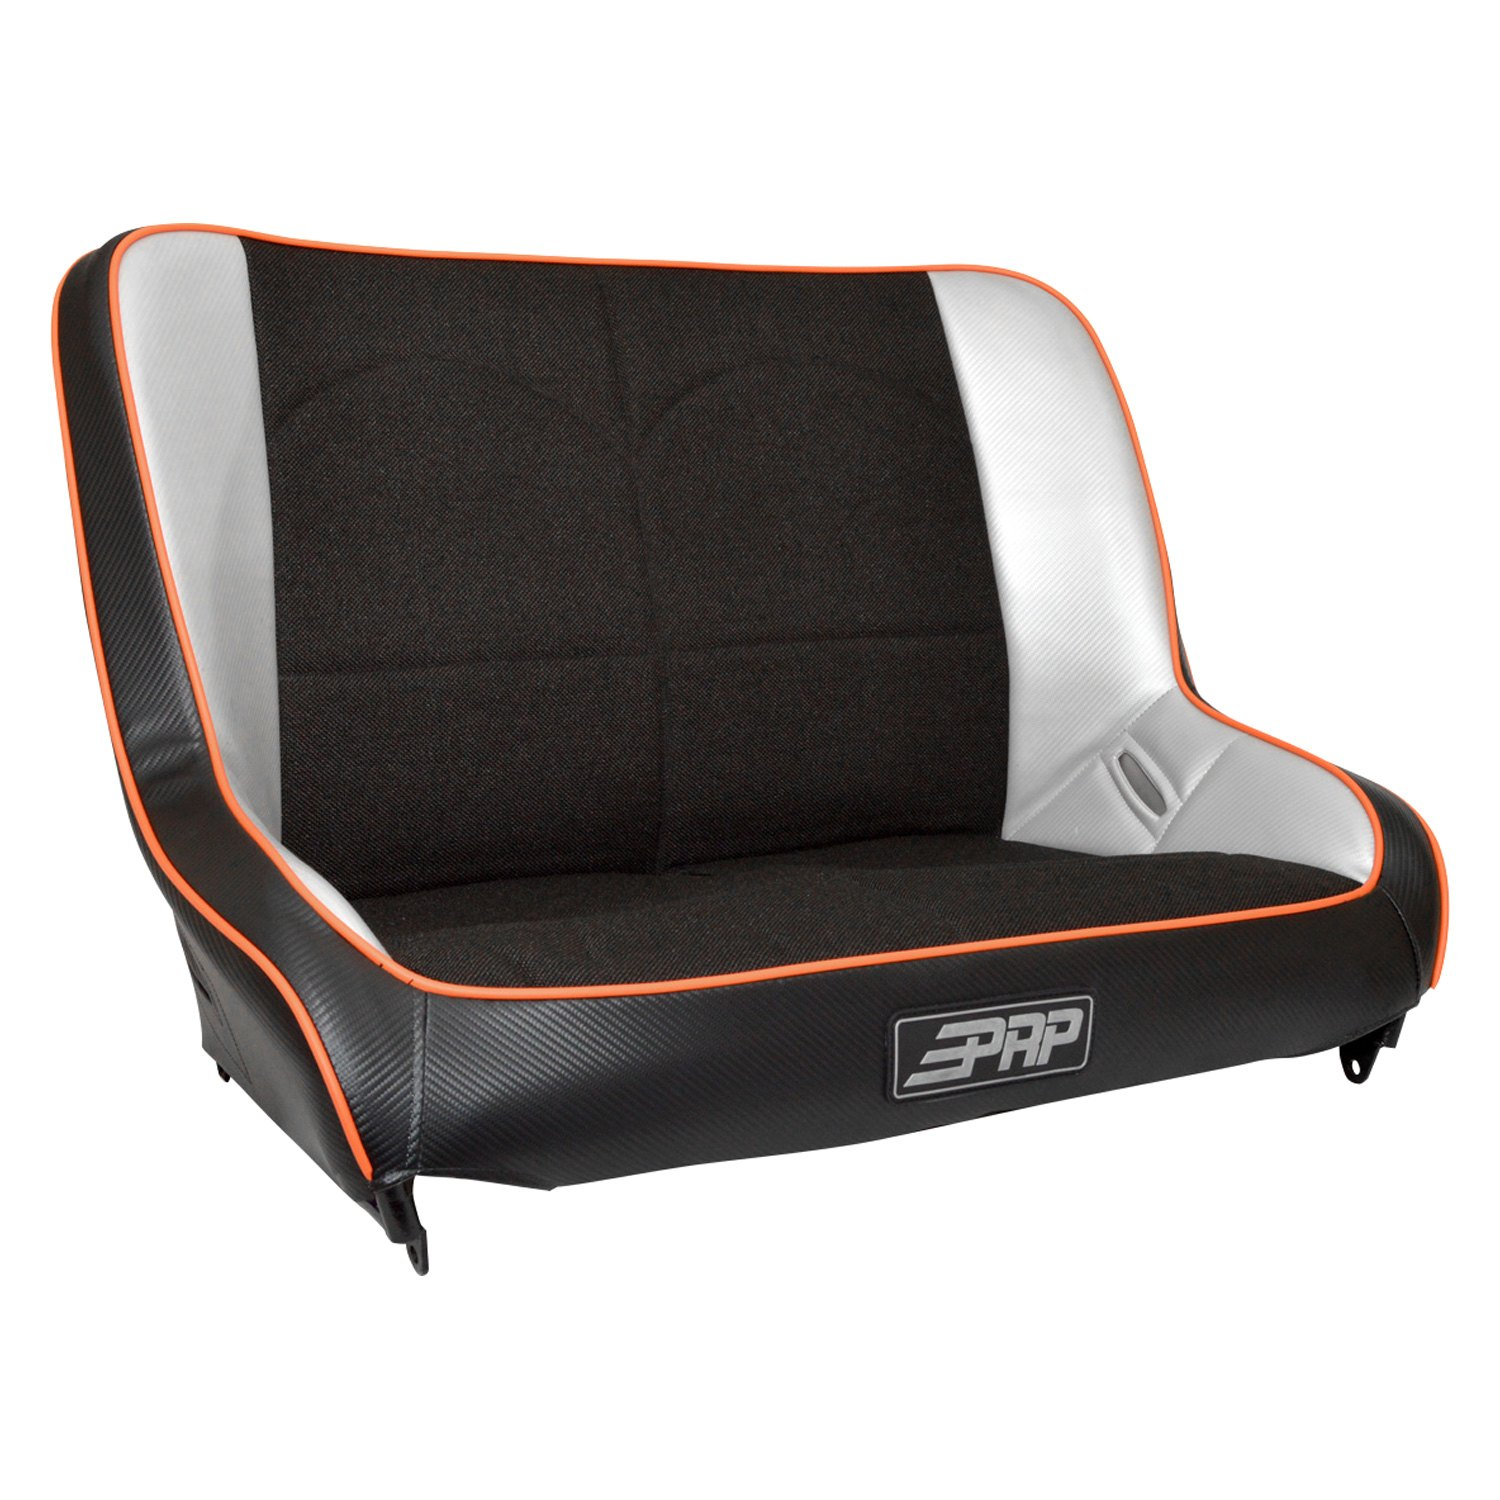 Very Impressive portraiture of PRP Seats® A3666 66 Front Bench Seat with #B54616 color and 1500x1500 pixels